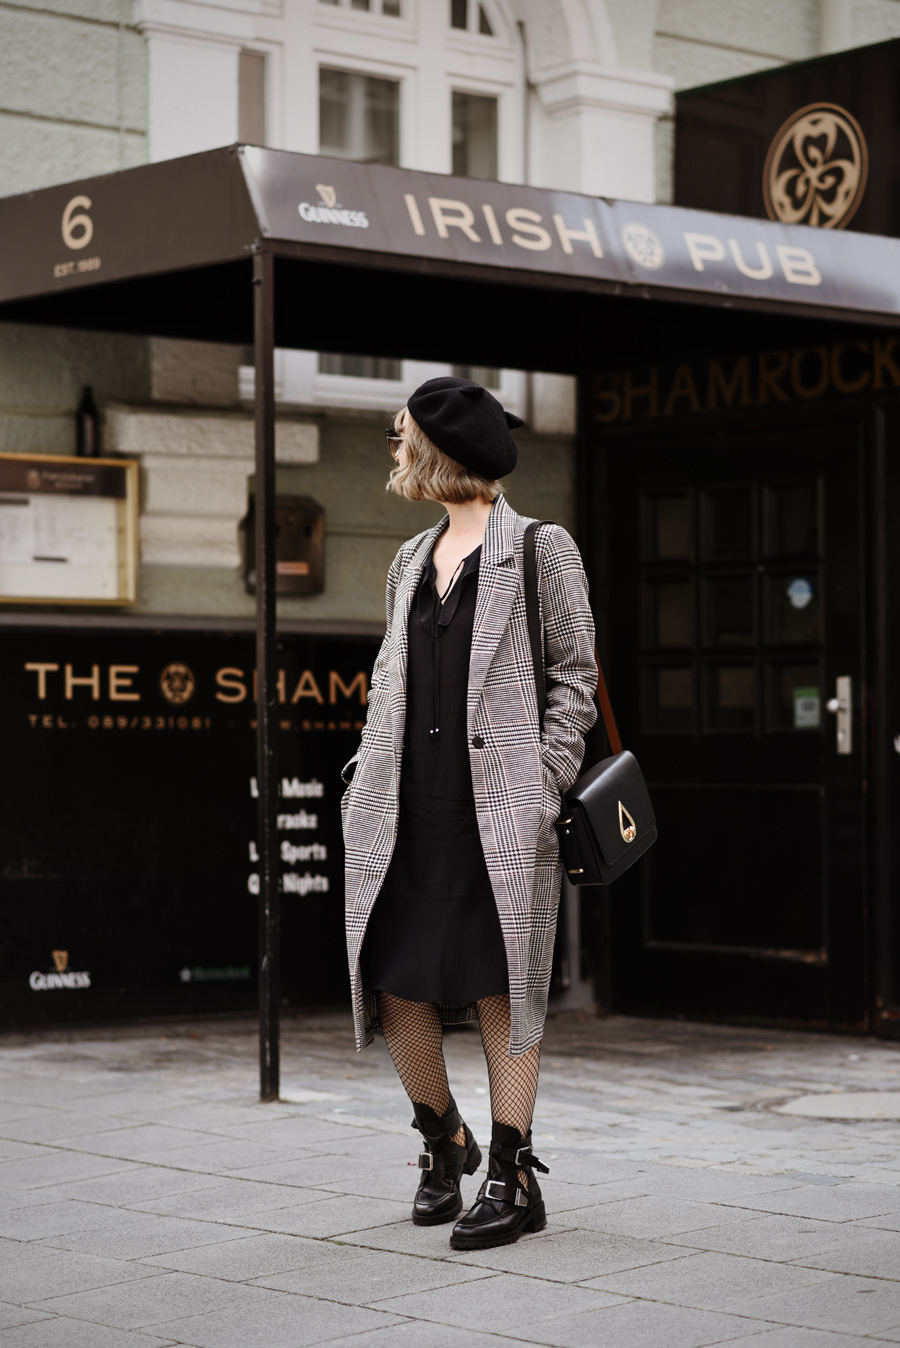 modeblog, modeblogger, münchen, fashionblog, fashionblogger, streetstyle, black, schwarz, herbst, fall, ootd, outfit